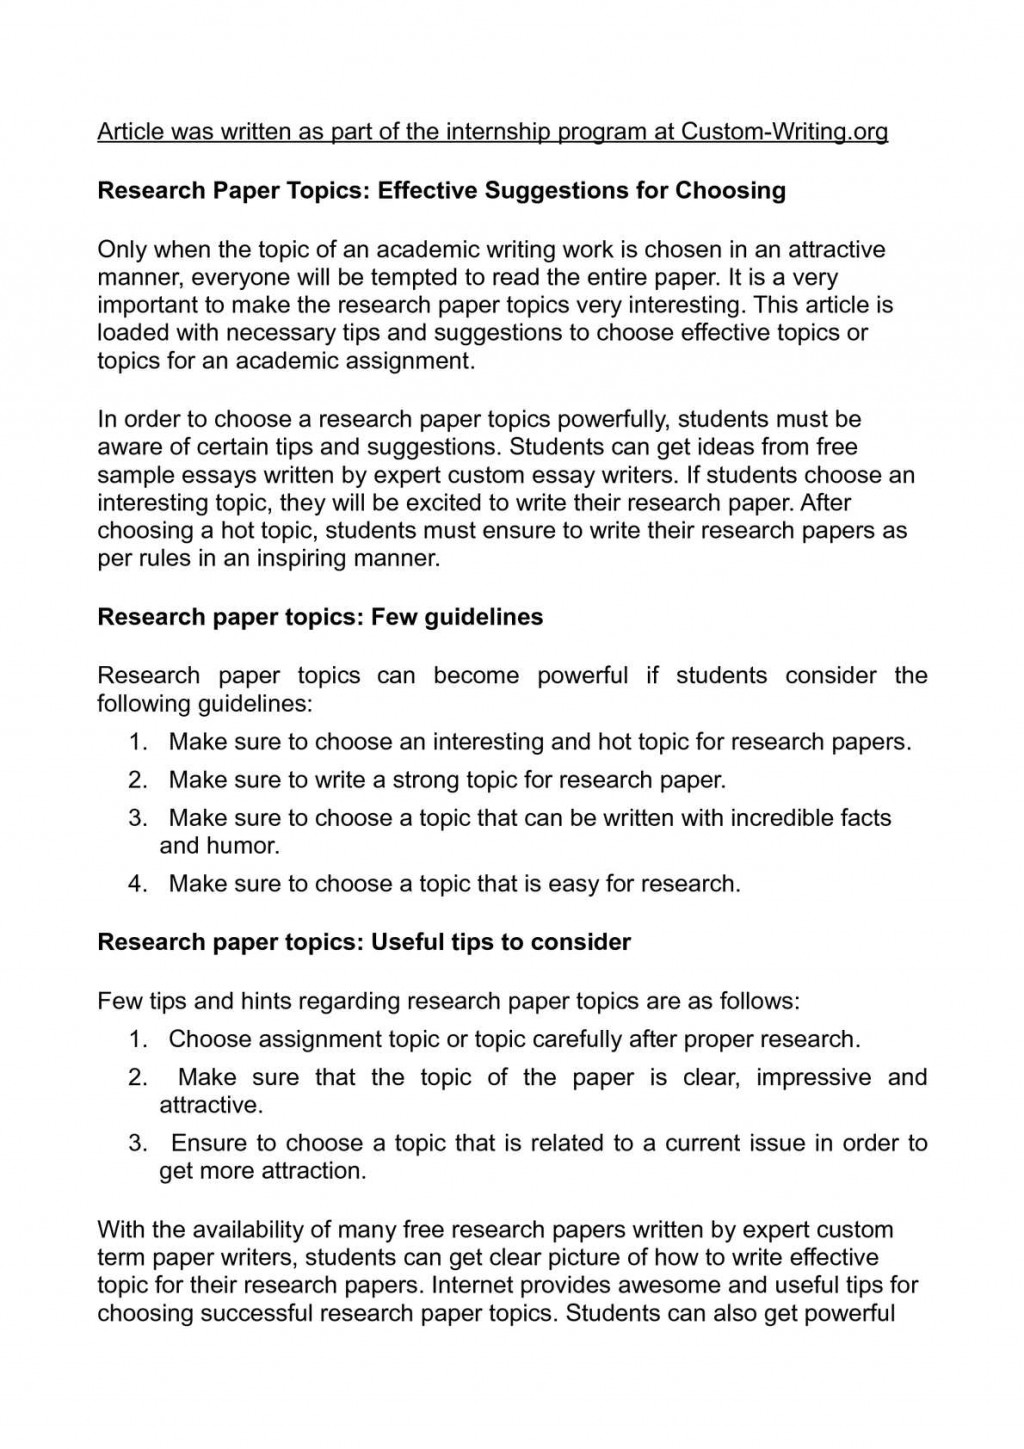 019 Research Paper Topics For Awful In Marketing Law About School Problems Large